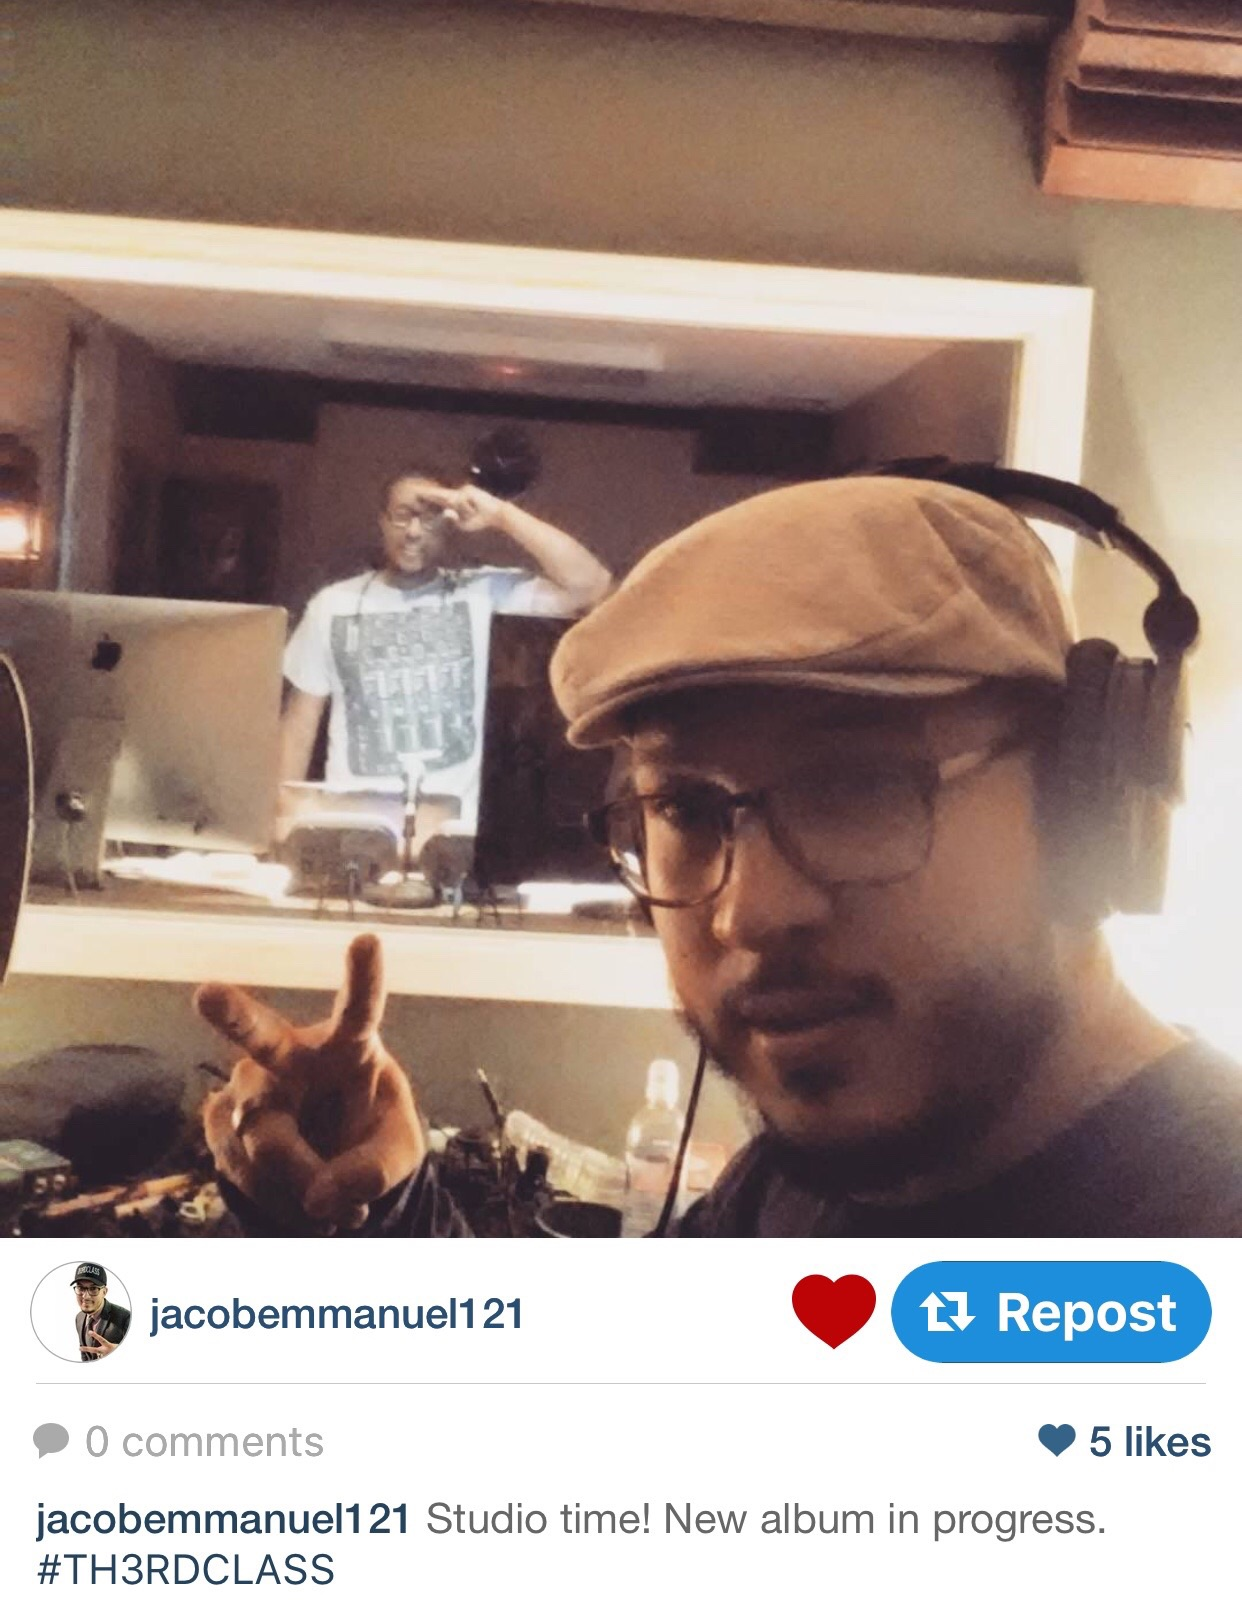 Jacob Emmanuel and I in Studio 325. For the record, this brother is one of those talented geezers that keep me grounded.